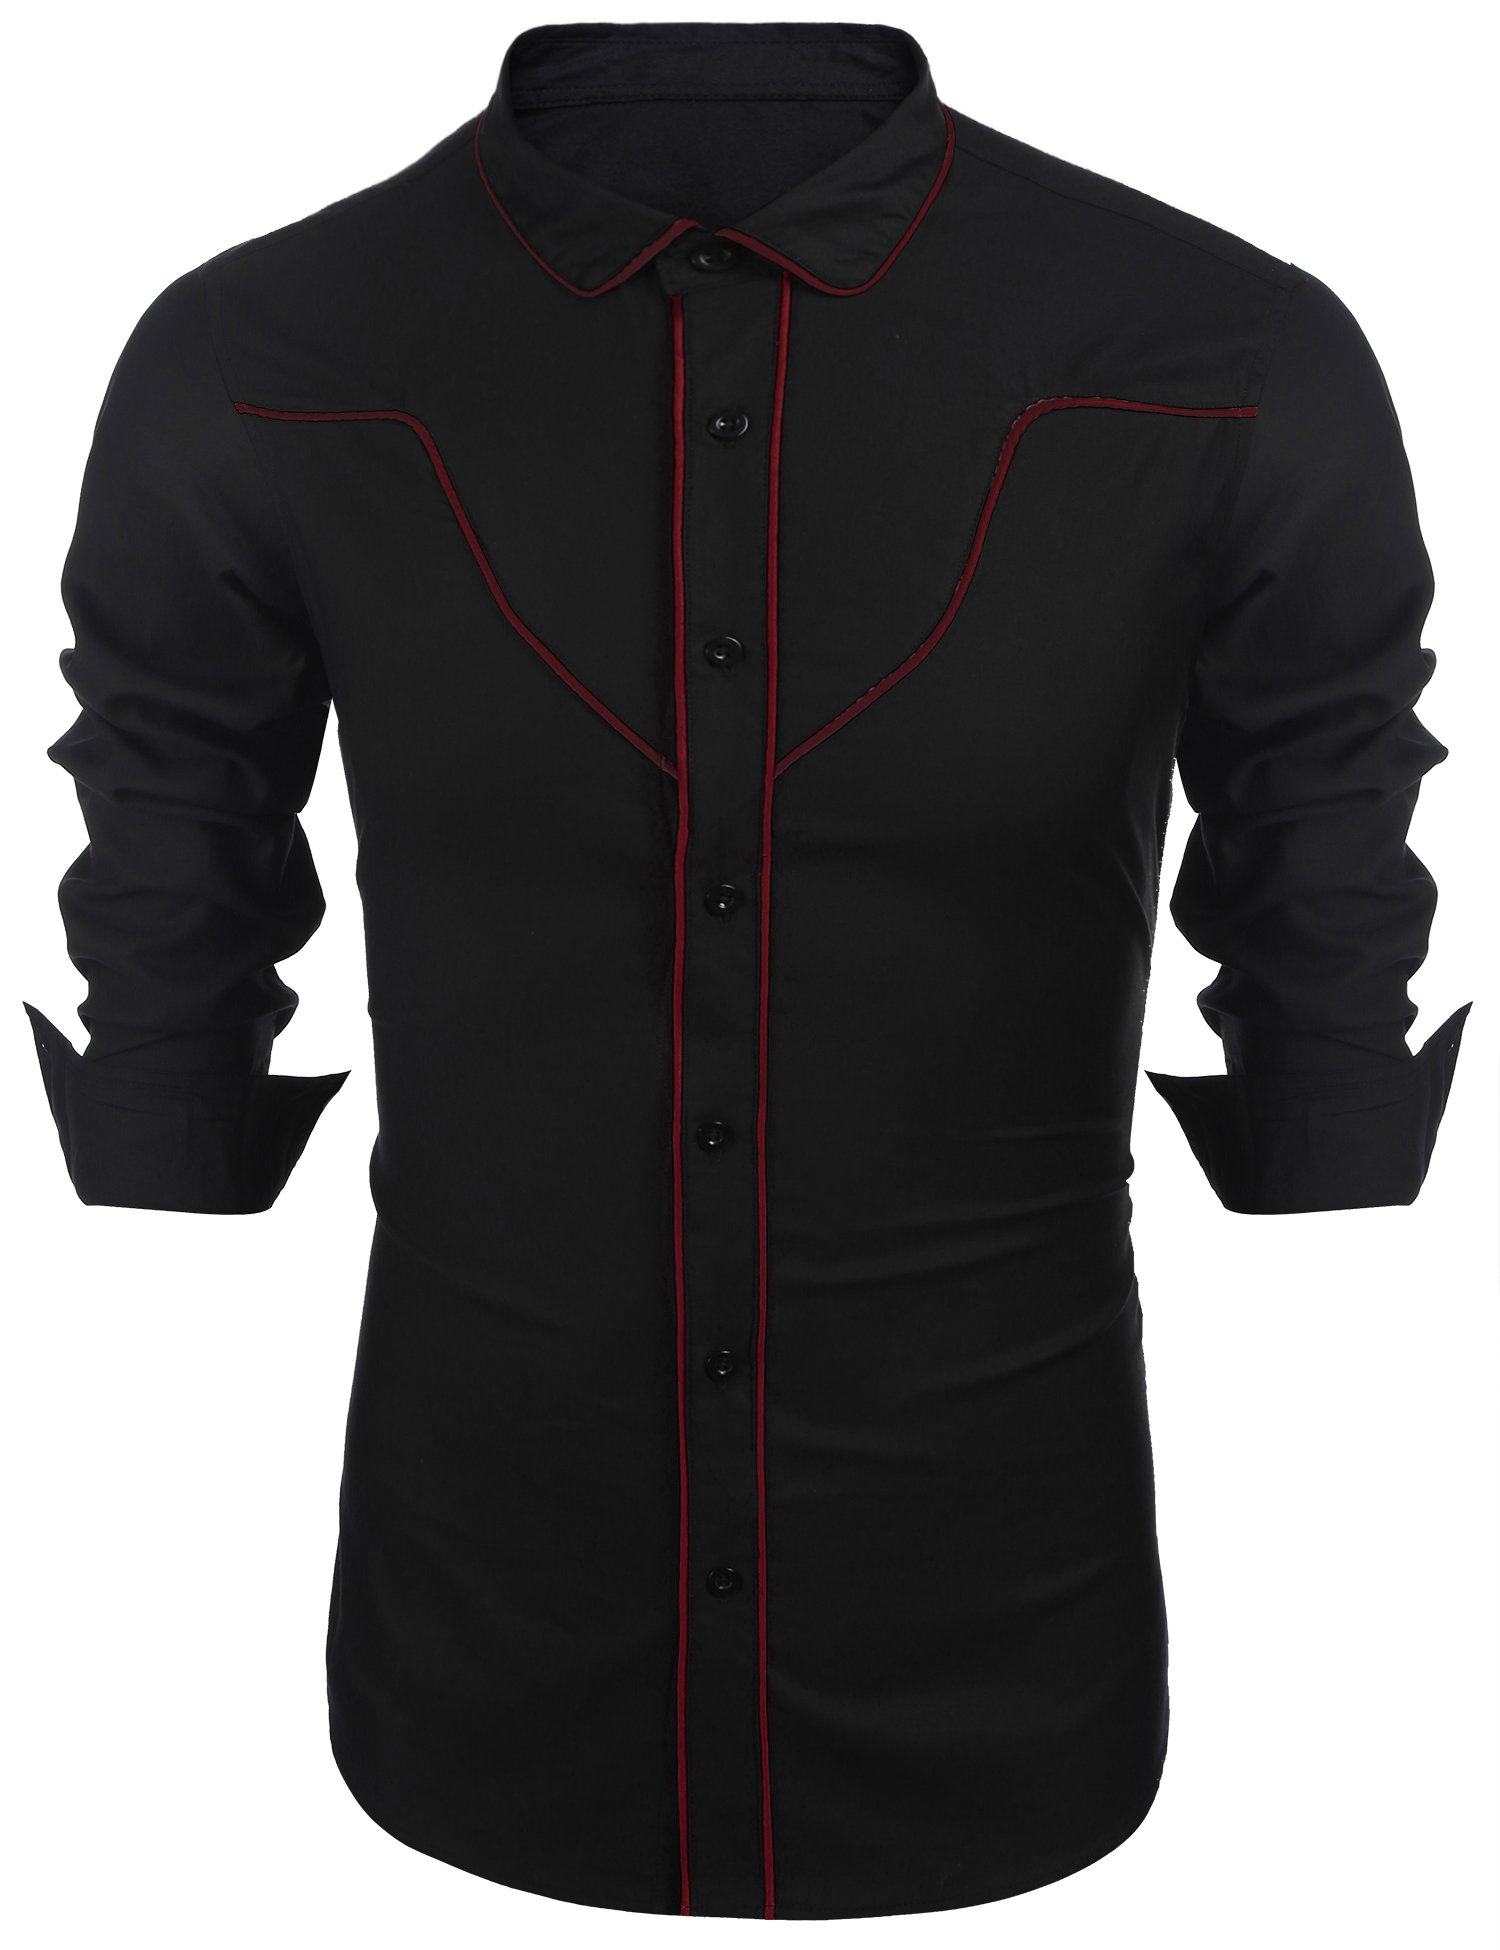 COOFANDY Mens Button Down Cotton Retro Western Cowboy Contrast Piping Shirt,X-Large,Red and Black